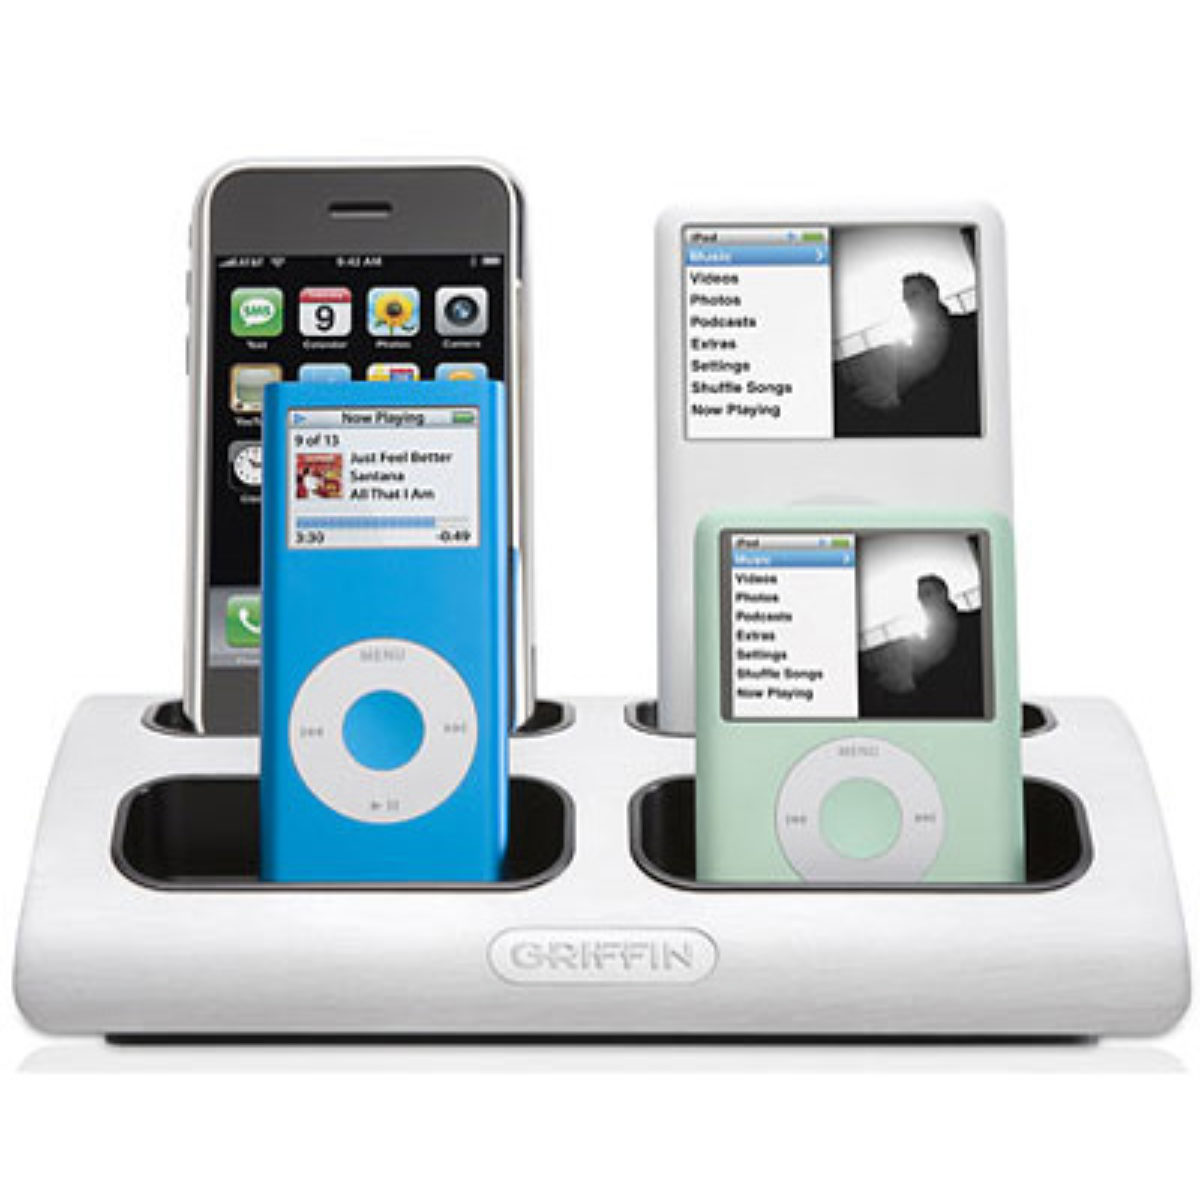 Powerdock Multiple Iphone And Ipod Charger Fits Almost Any Types Of Ipod And Iphone Models